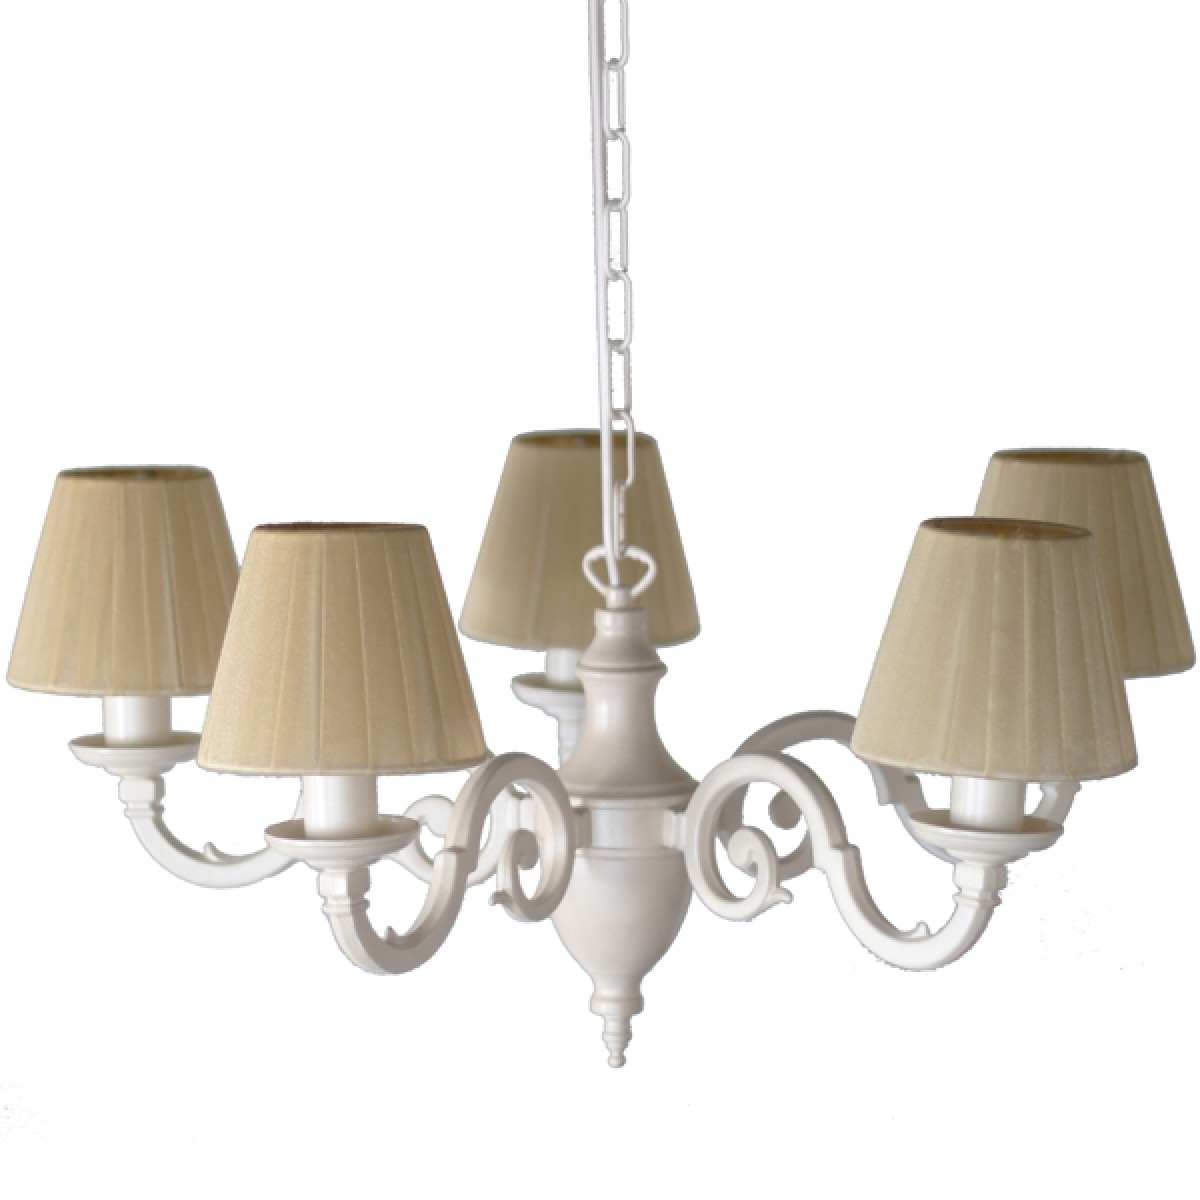 Bedroom Light Fitting Chandelier Regarding Cream Chandelier Lights (#2 of 12)